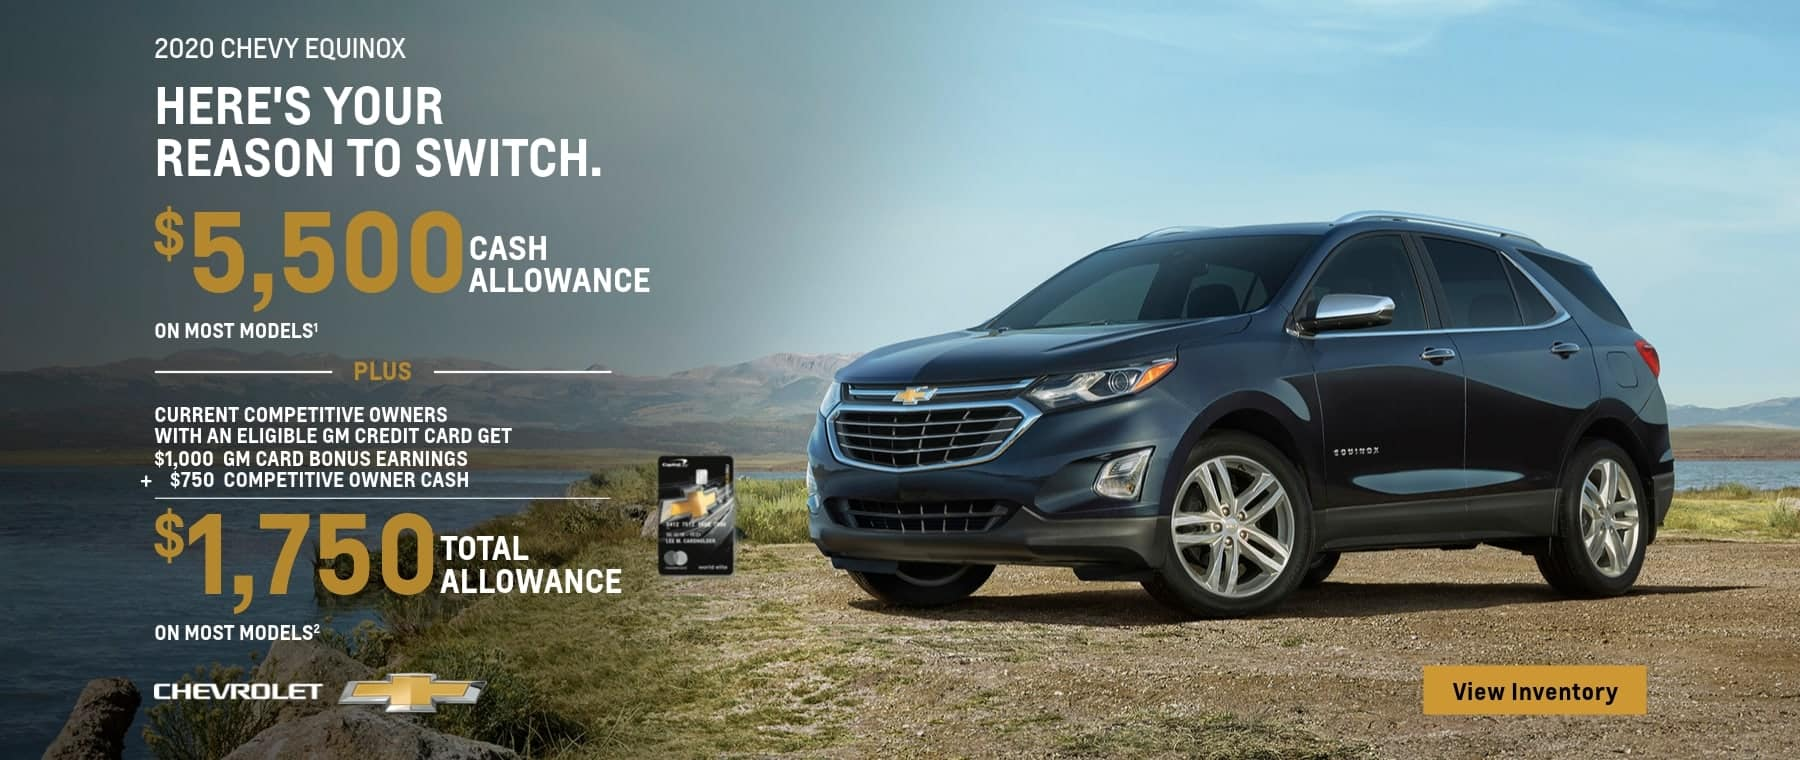 2020 Chevy Equinox $5,500 Cash Allowance on most models plus current Competitive owners with an eligible GM Card get $1,000 GM Card bonus earnings plus $750 competitive owner cash. That's $,750 total cash allowance on most models.